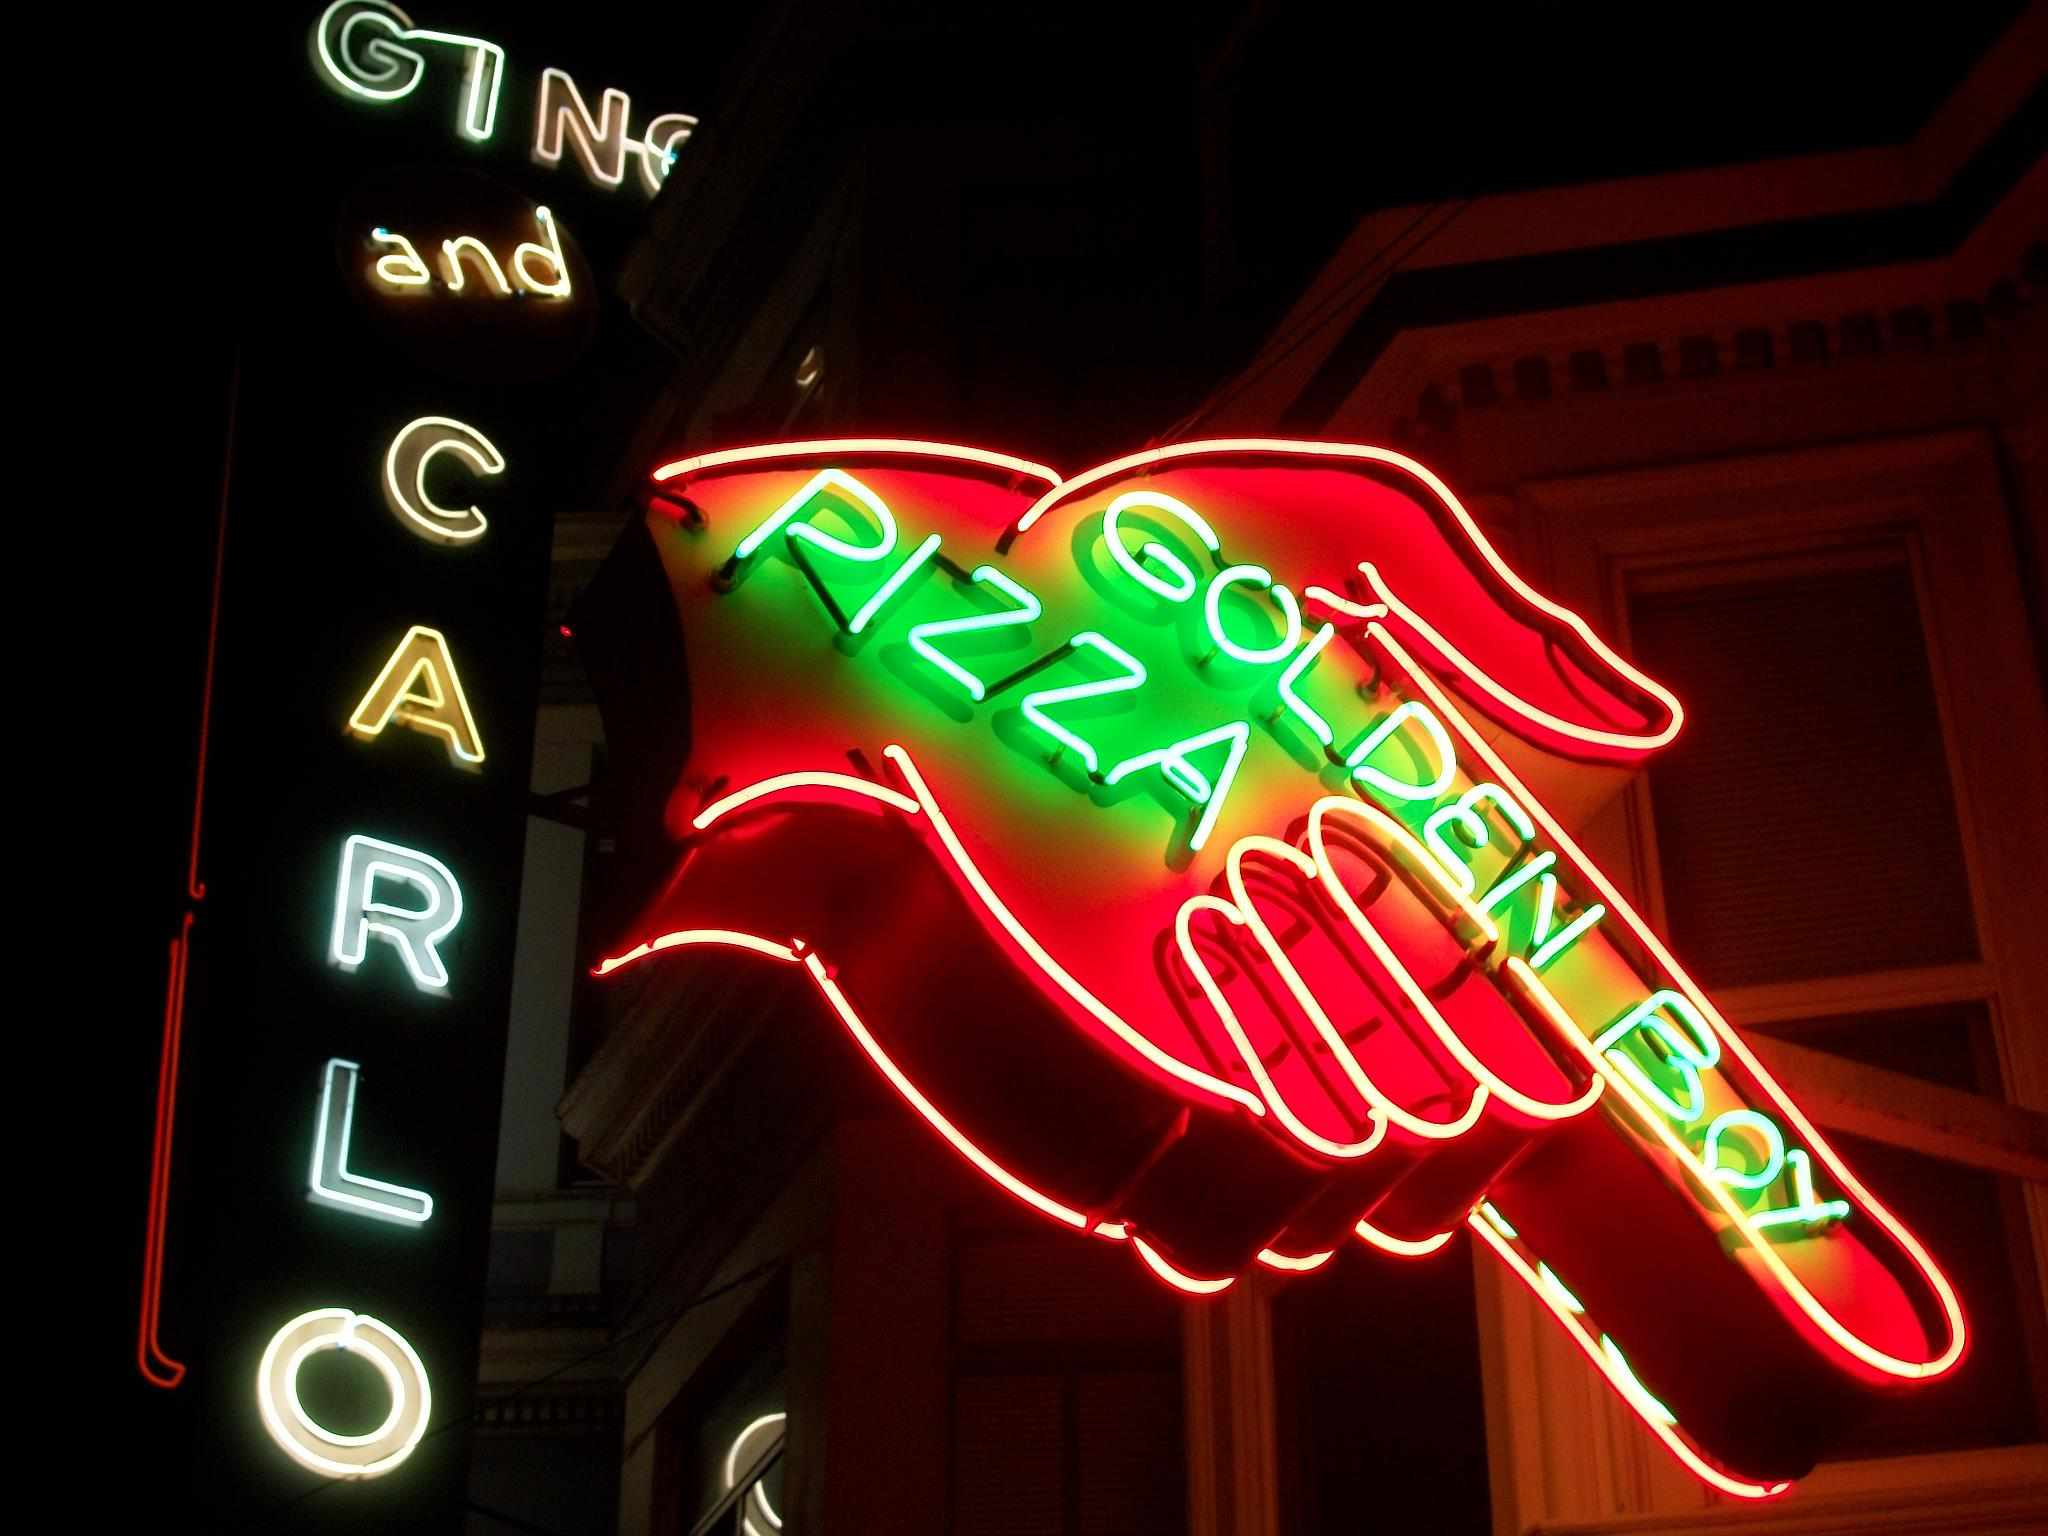 Neon sign for Golden Boy Pizza